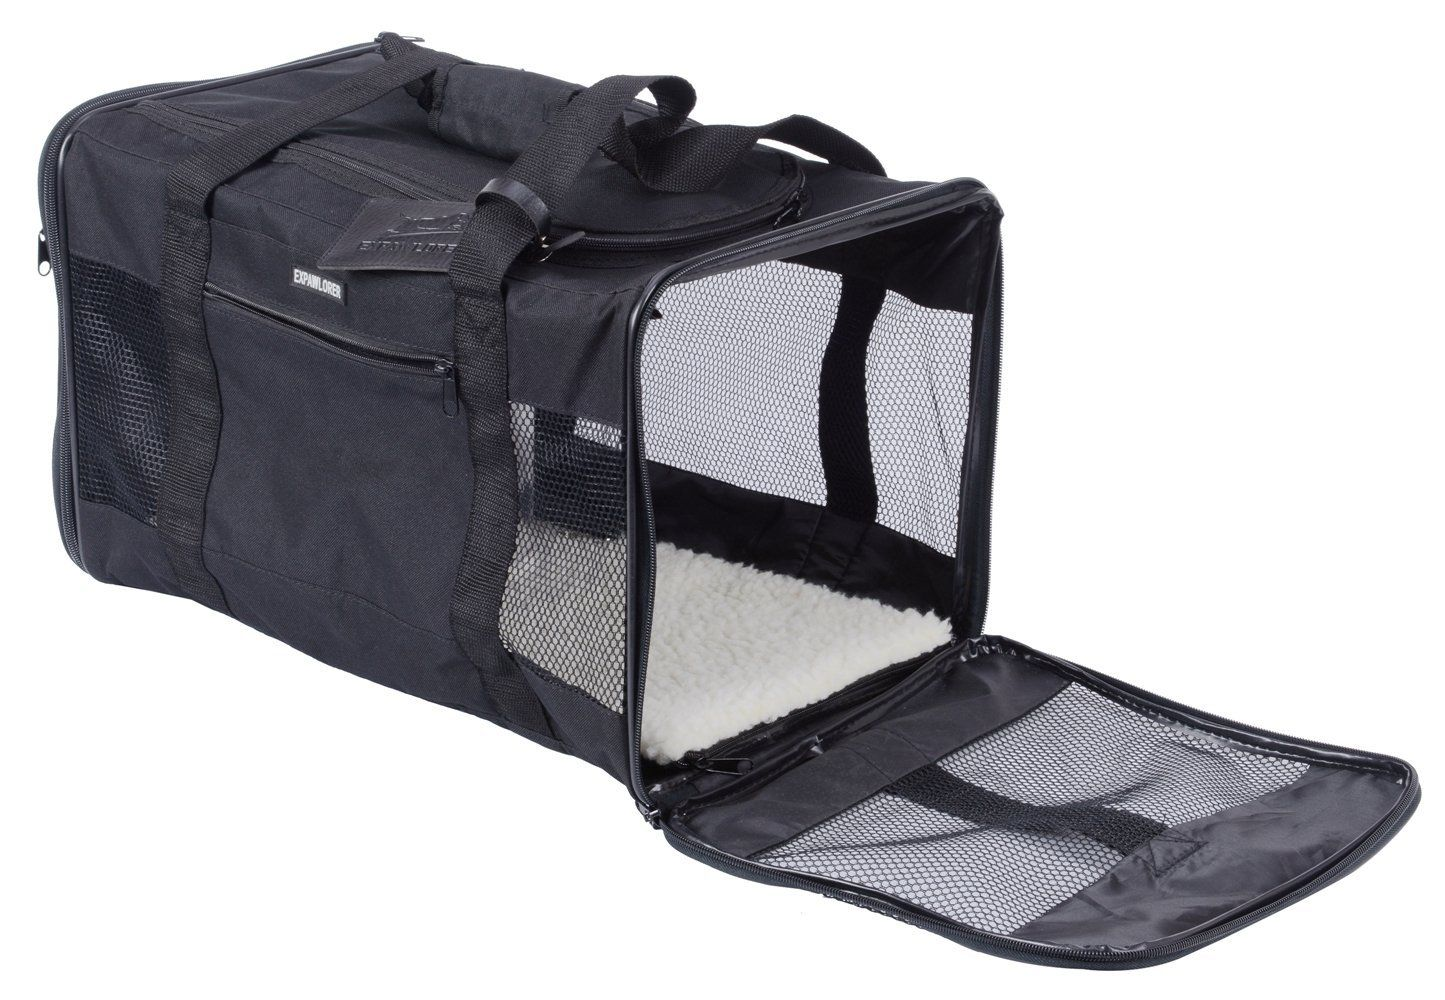 Airline Pet Travel Carrier SoftSided for Cats and Small